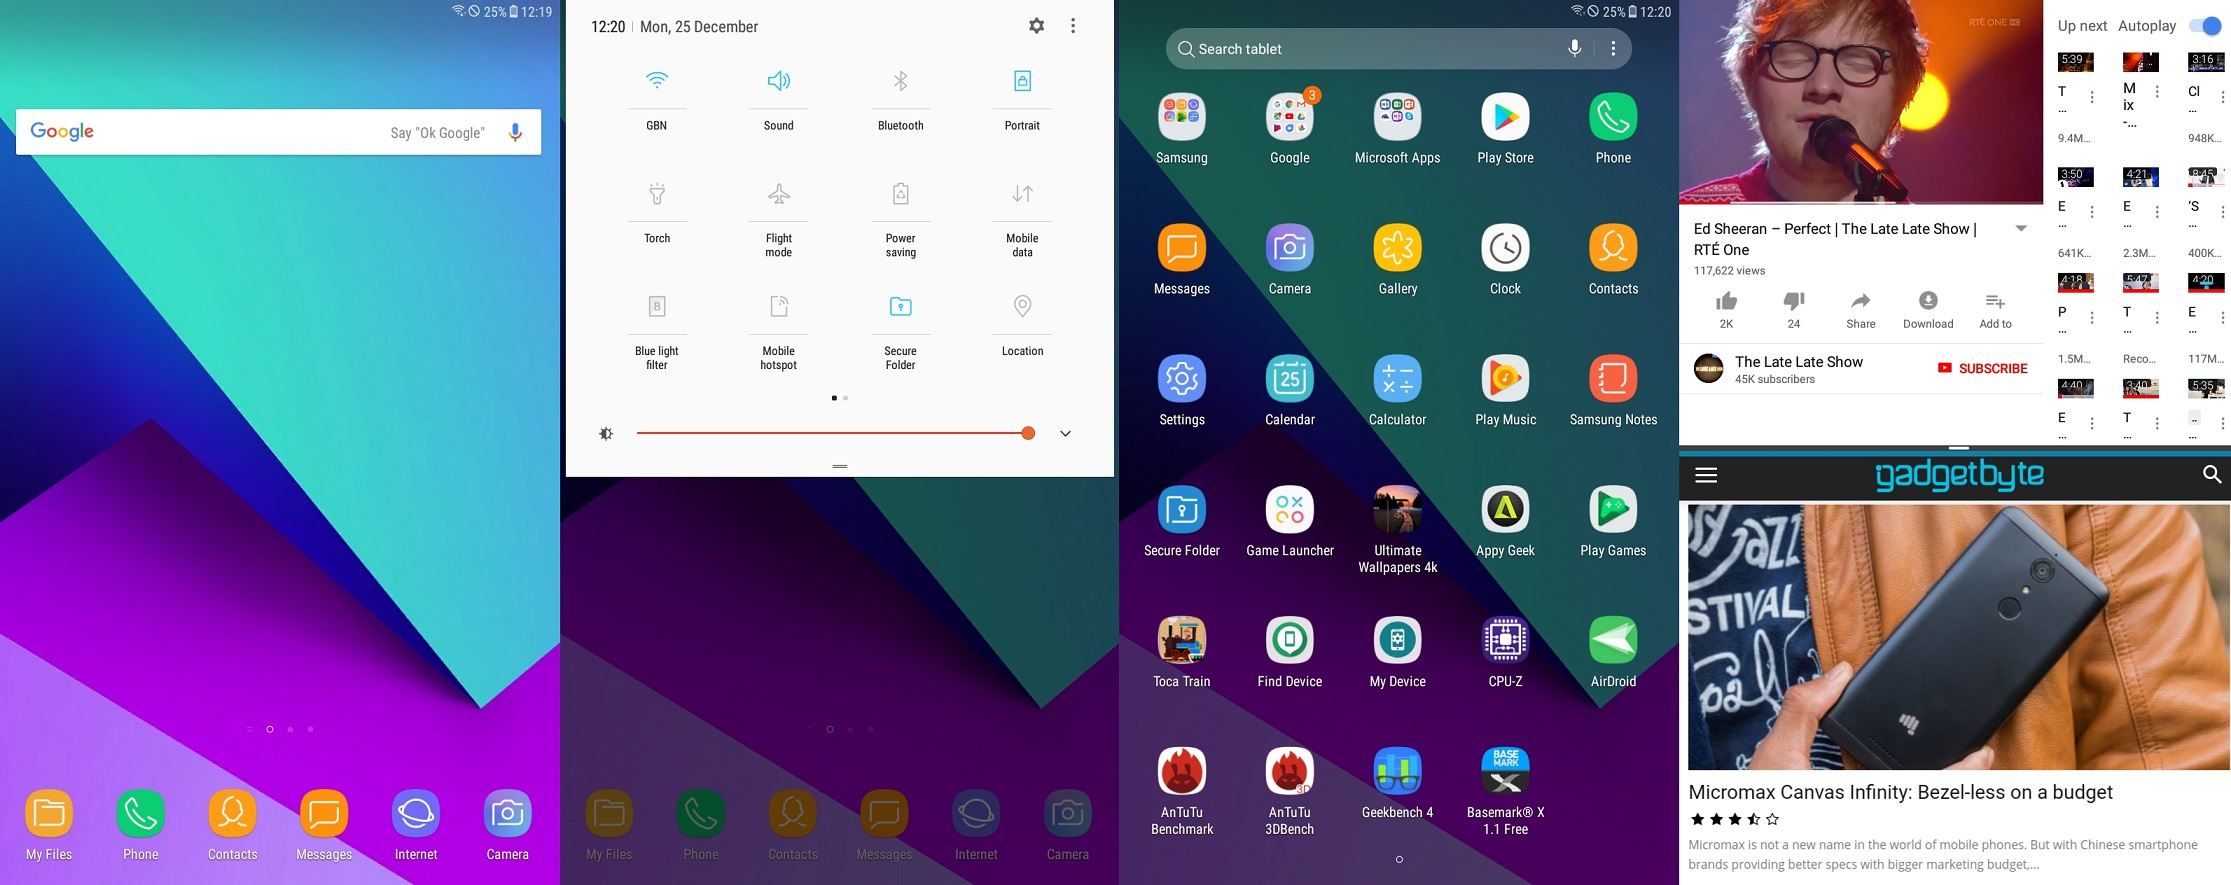 samsung tab a 2017 UI software review